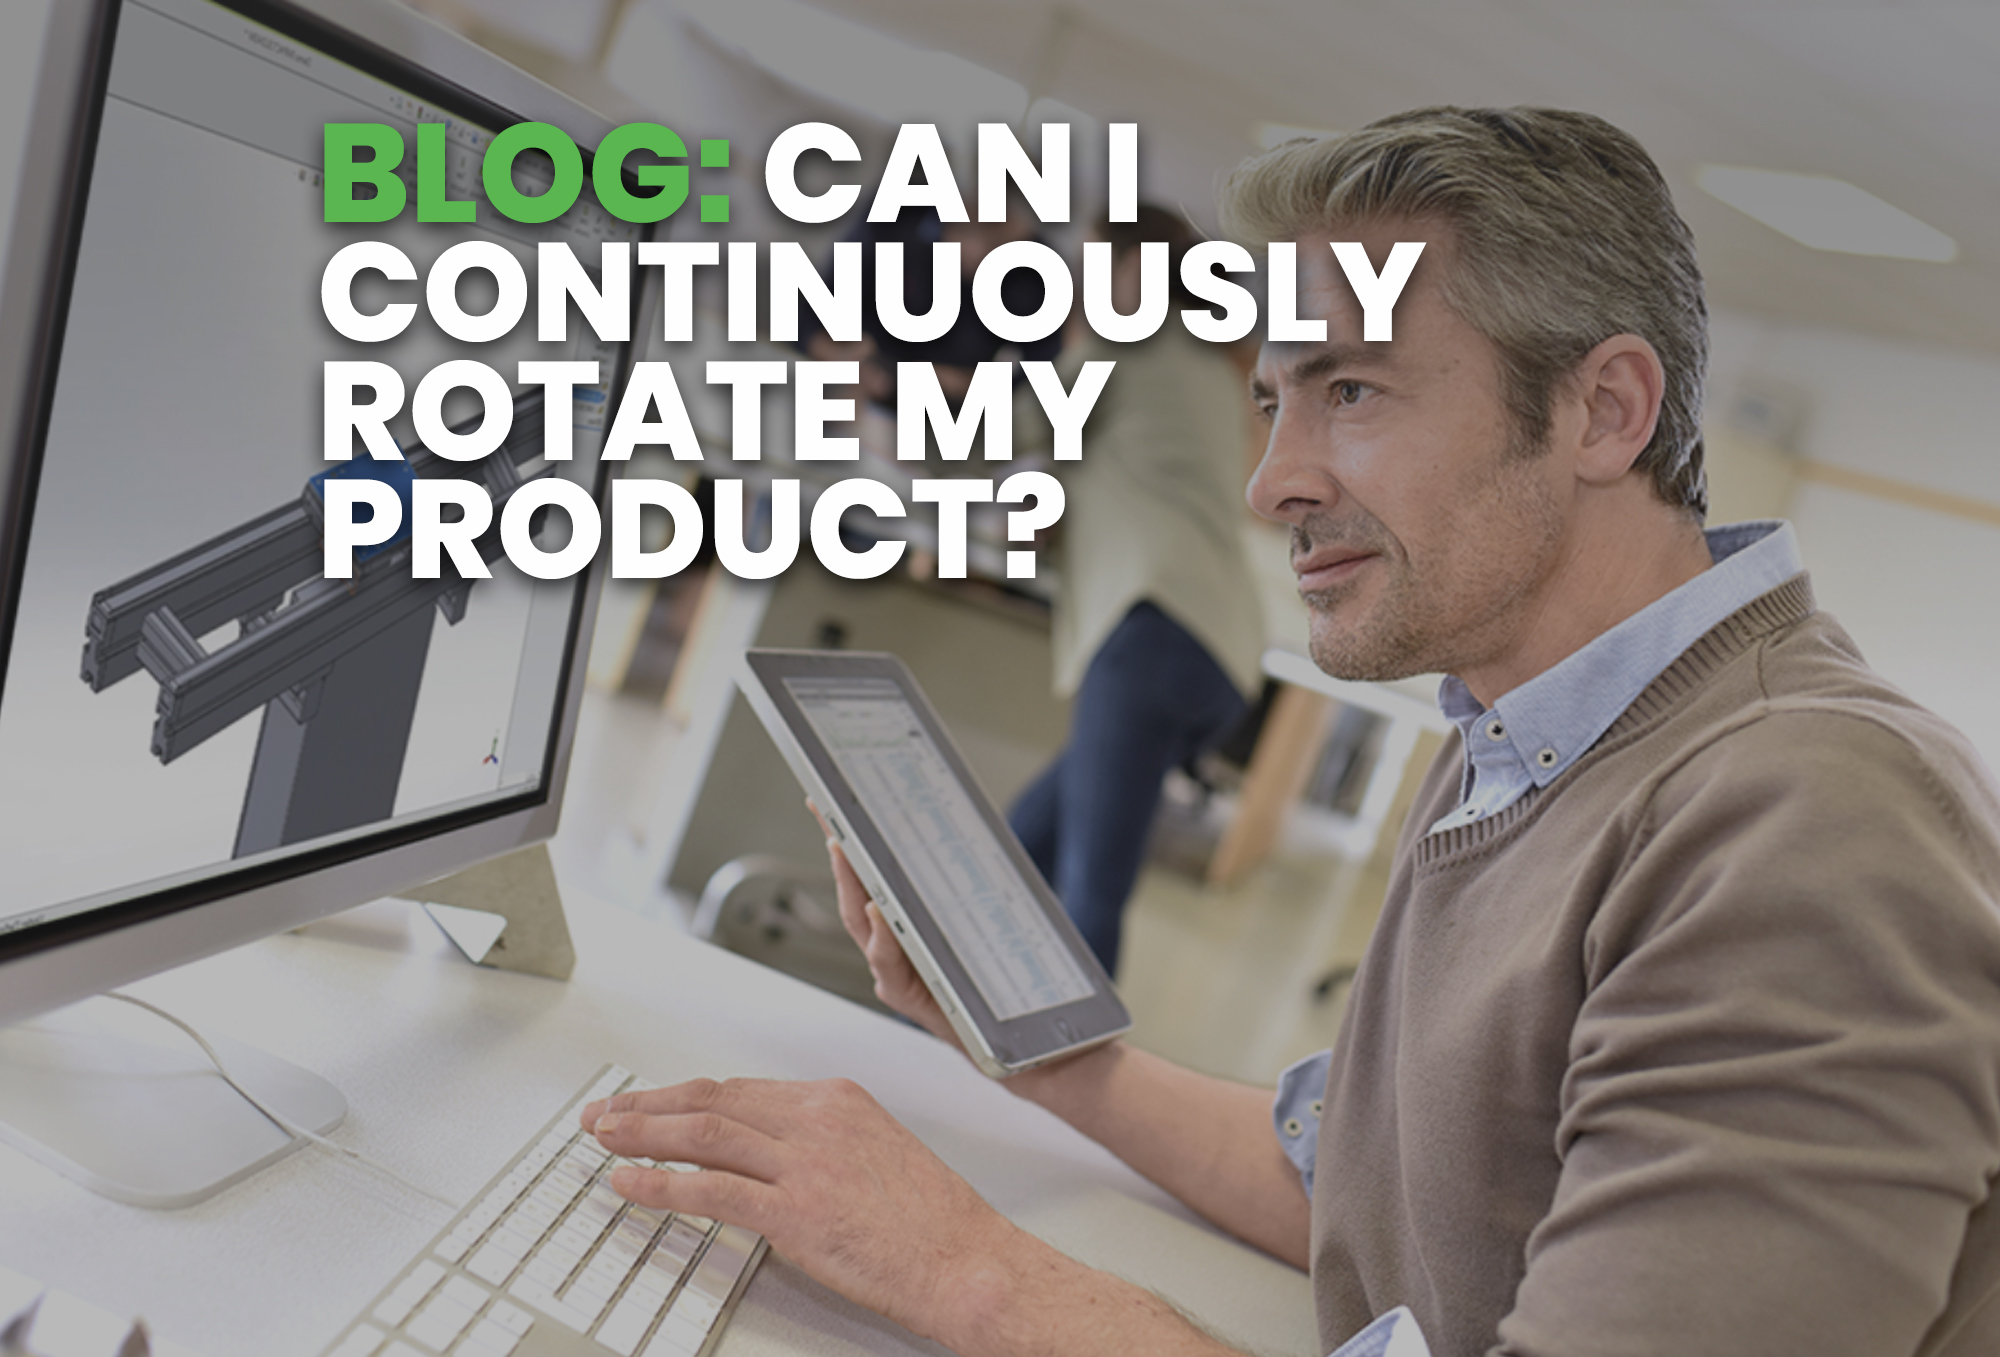 BLOG- Can I Continuously Rotate My Product?